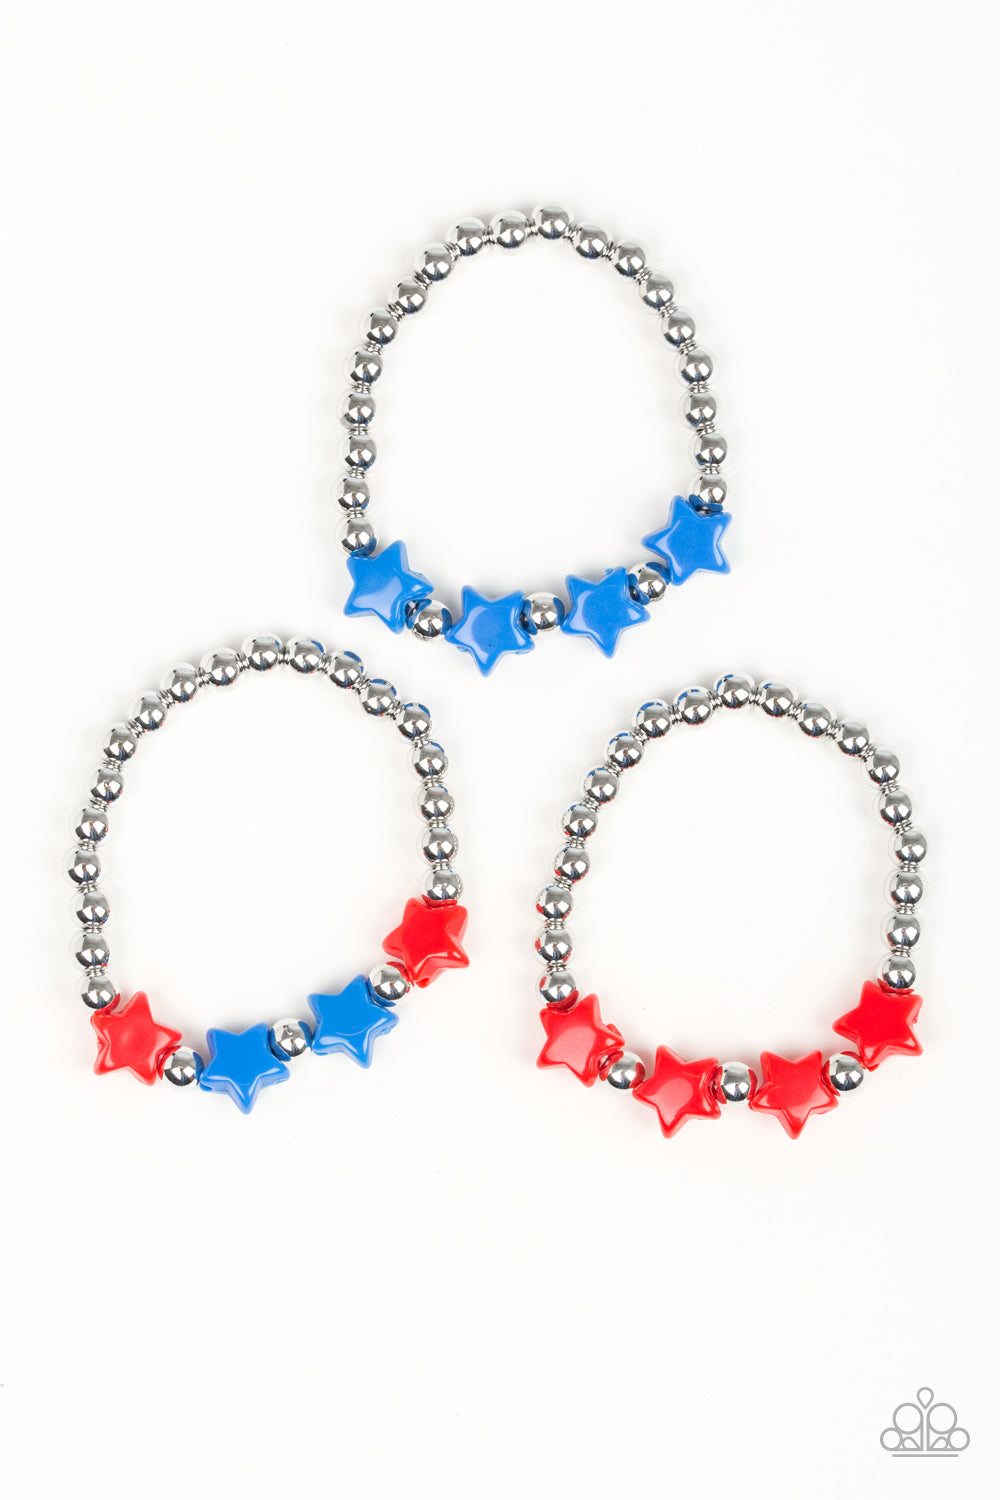 Paparazzi Accessories - Starlet Shimmer - 4 Star Bracelet - JMJ Jewelry Collection